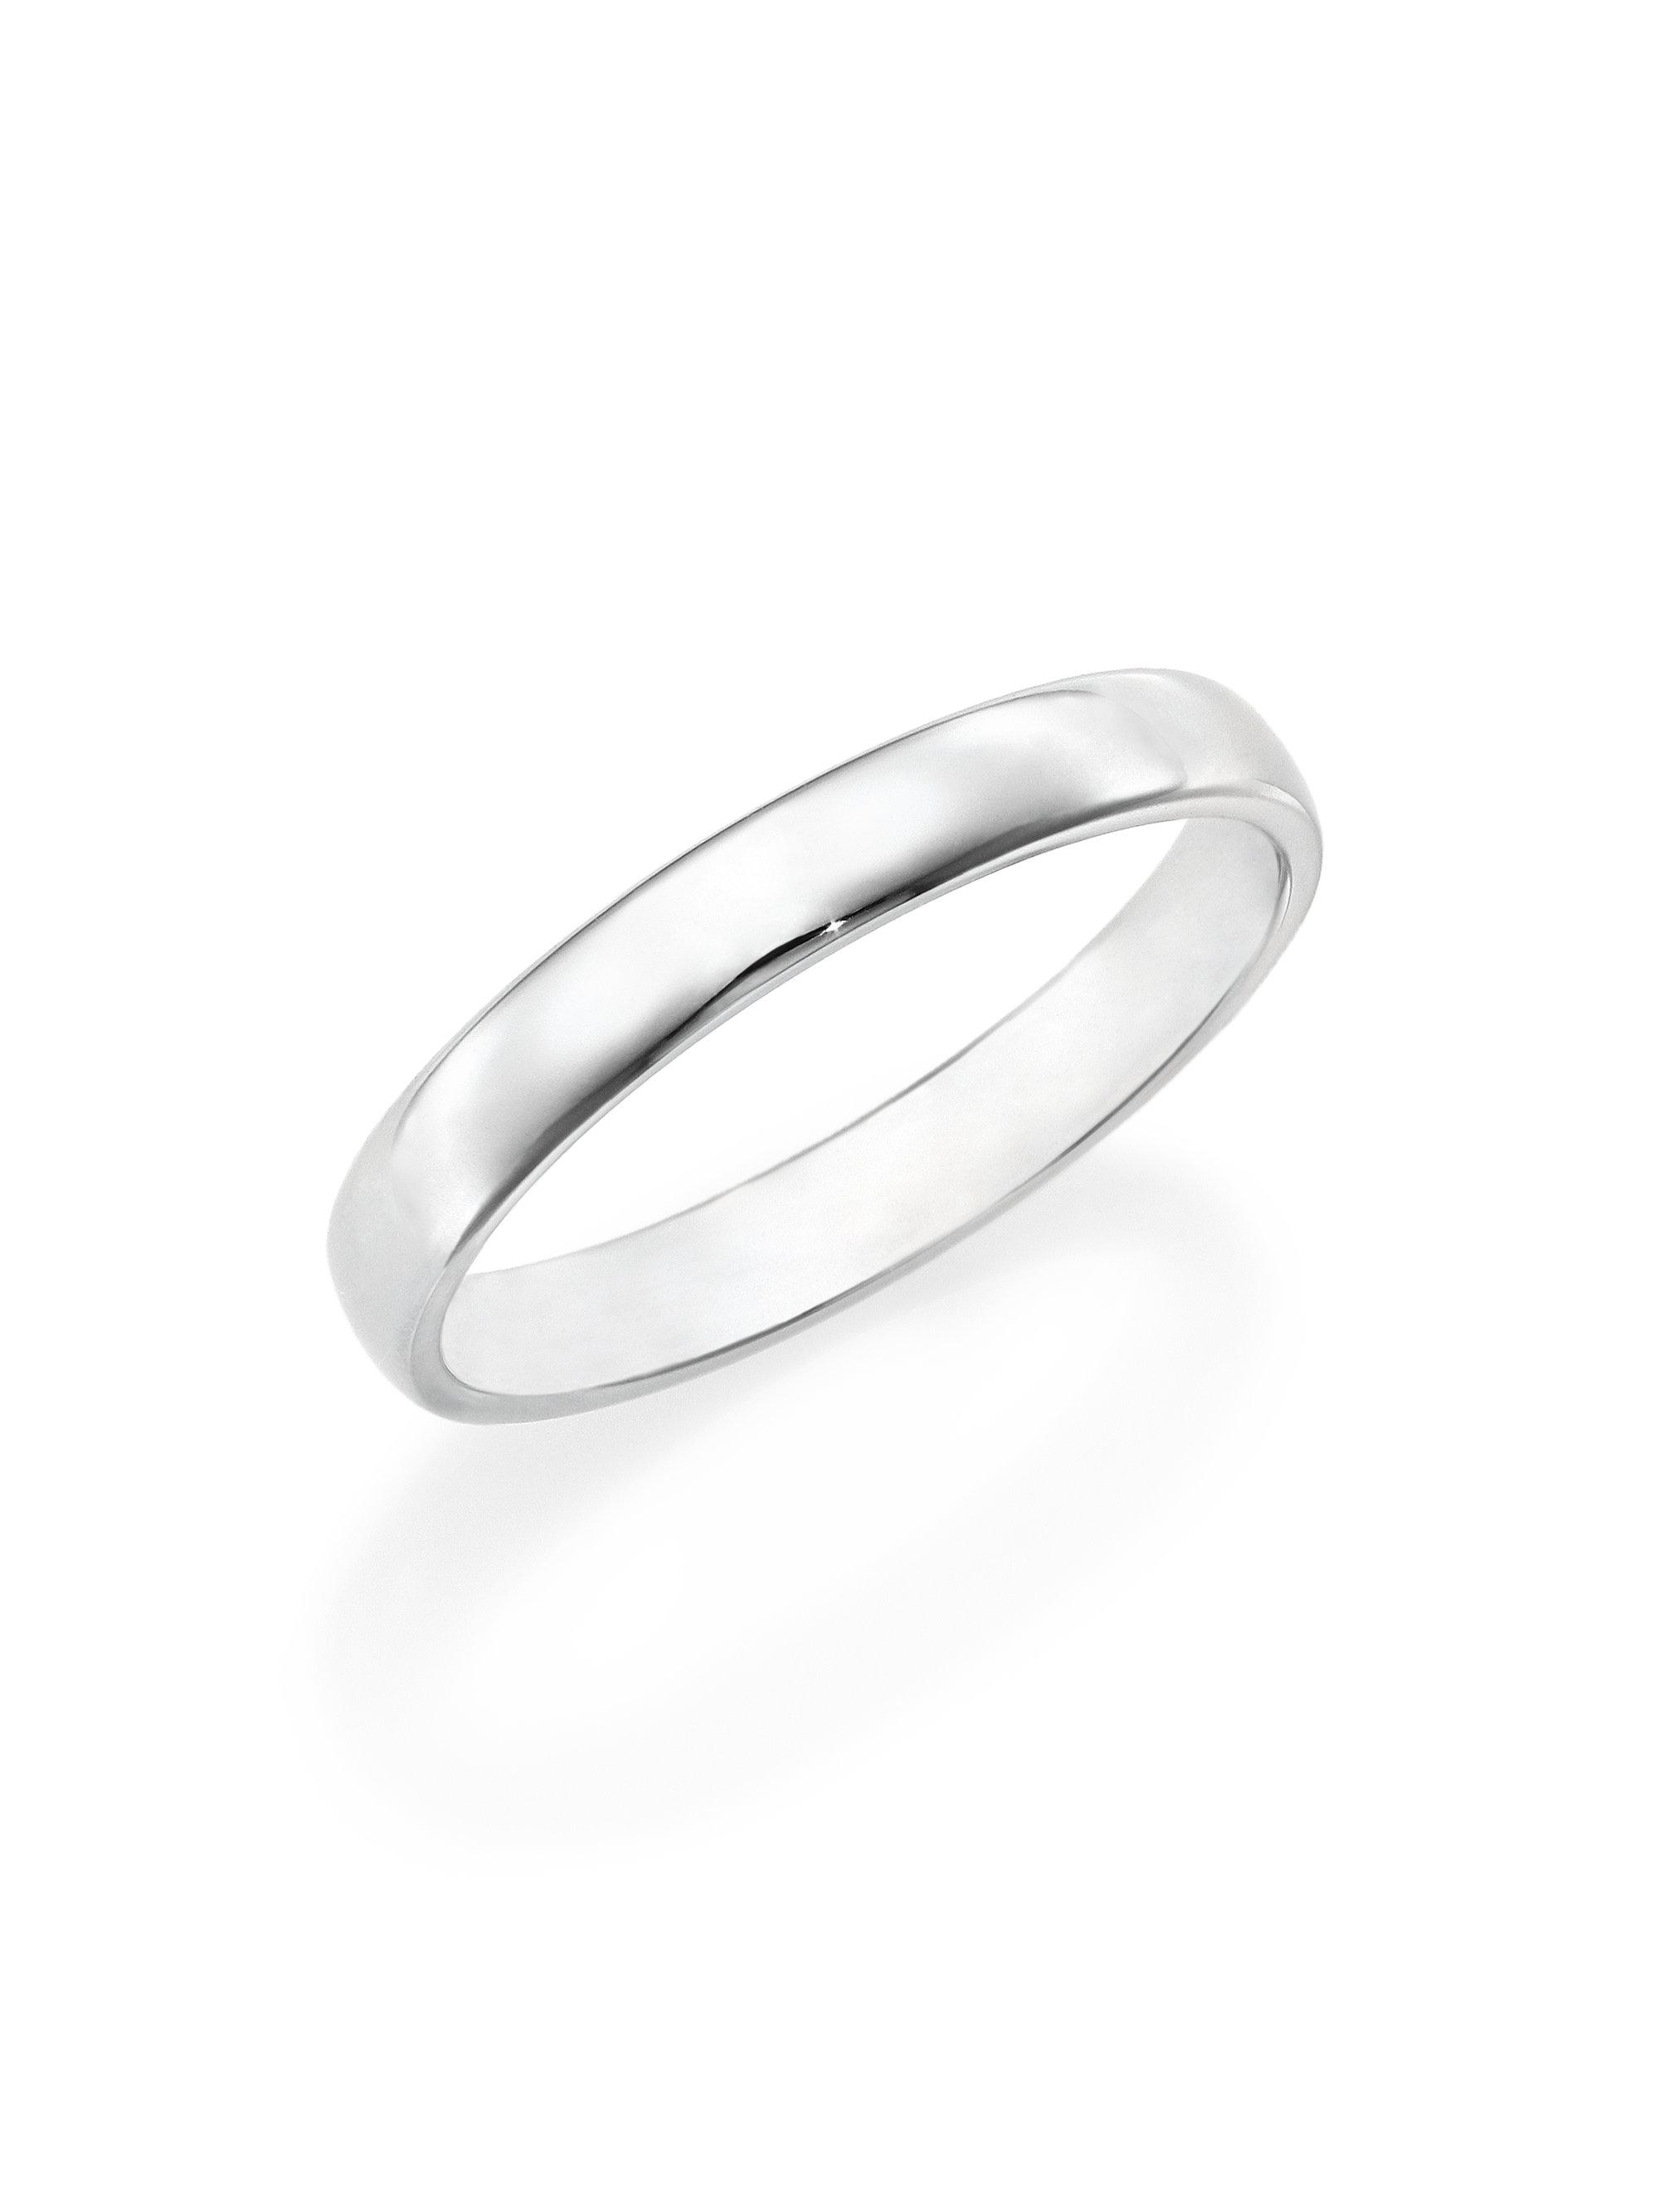 english band products ring wedding bands platinum vintage top black hallmark